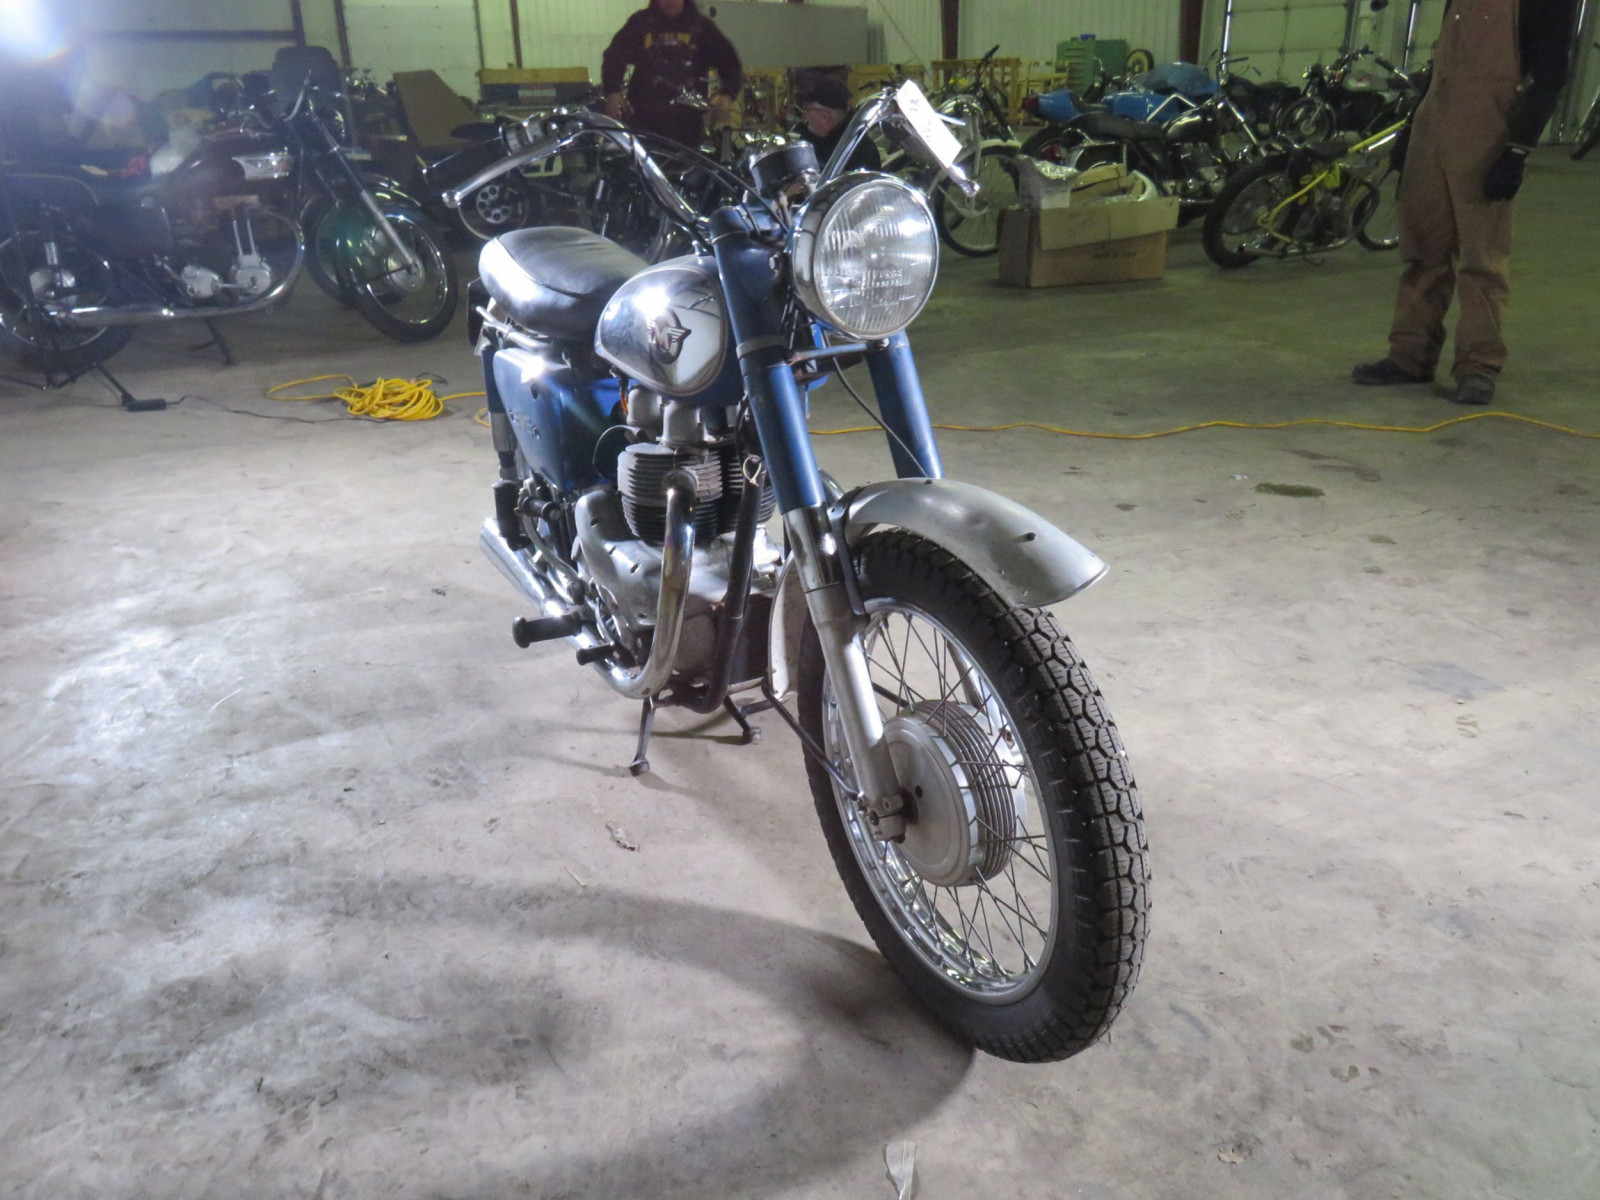 1962 Matchless G12 Motorcycle - Image 2